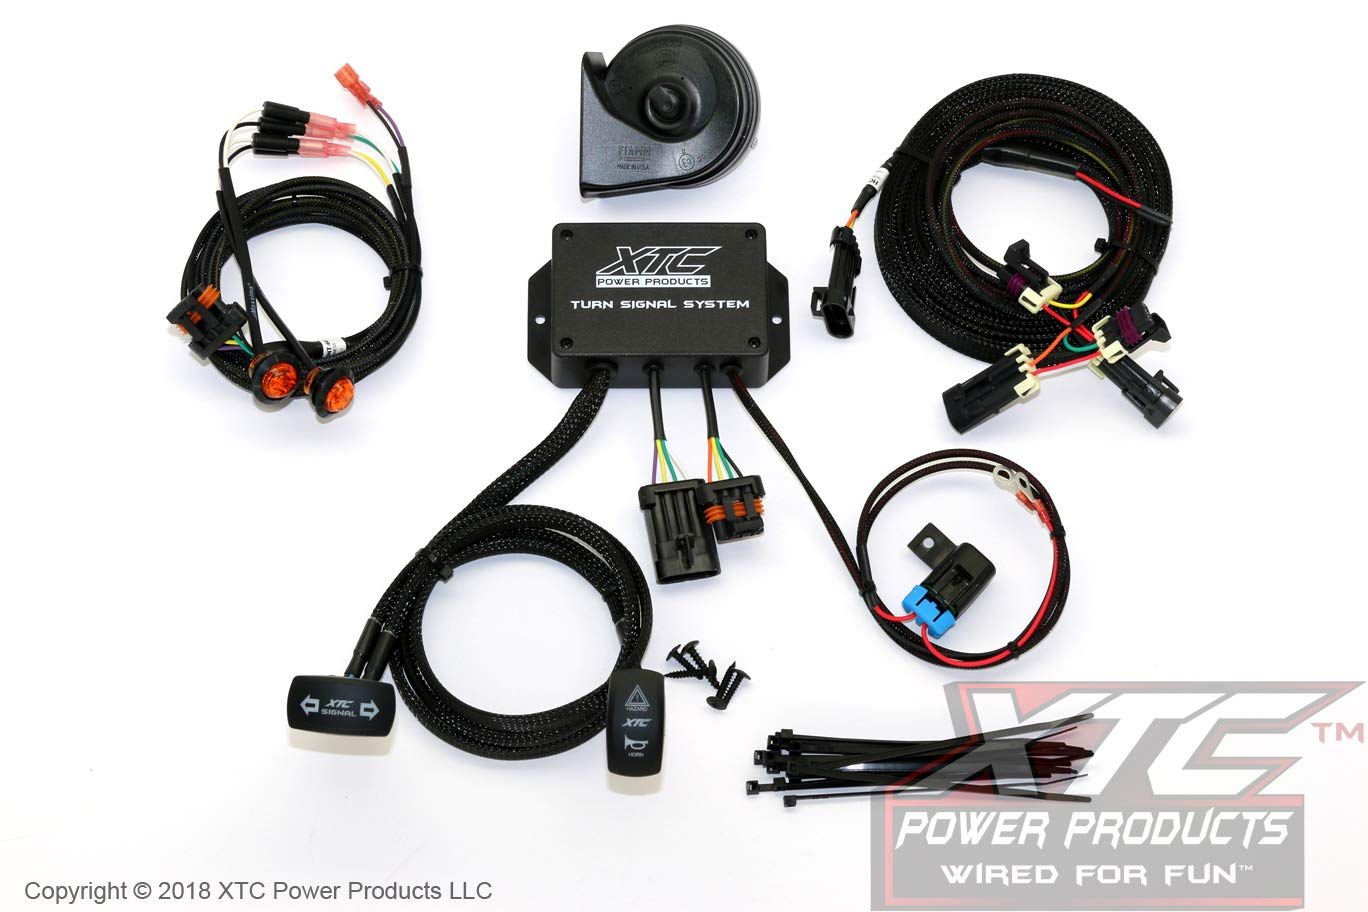 XTC Power Products Honda Pioneer 1000 Street Legal Turn Signal System with Horn - Plug & Play - Uses Factory Tail Lights by XTC Motorsports